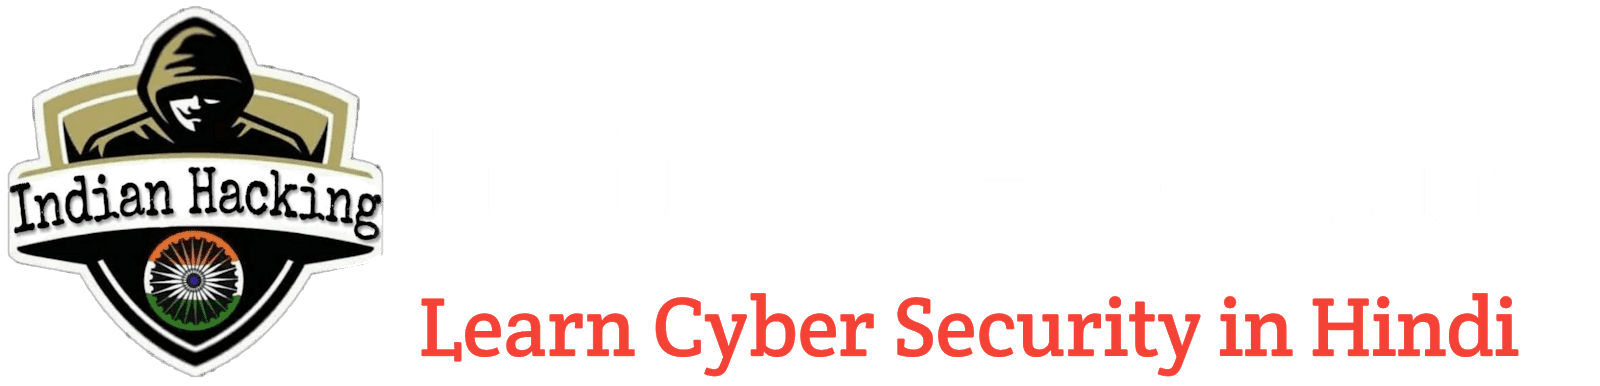 Indian Hacking - Learn Cybersecurity in Hindi